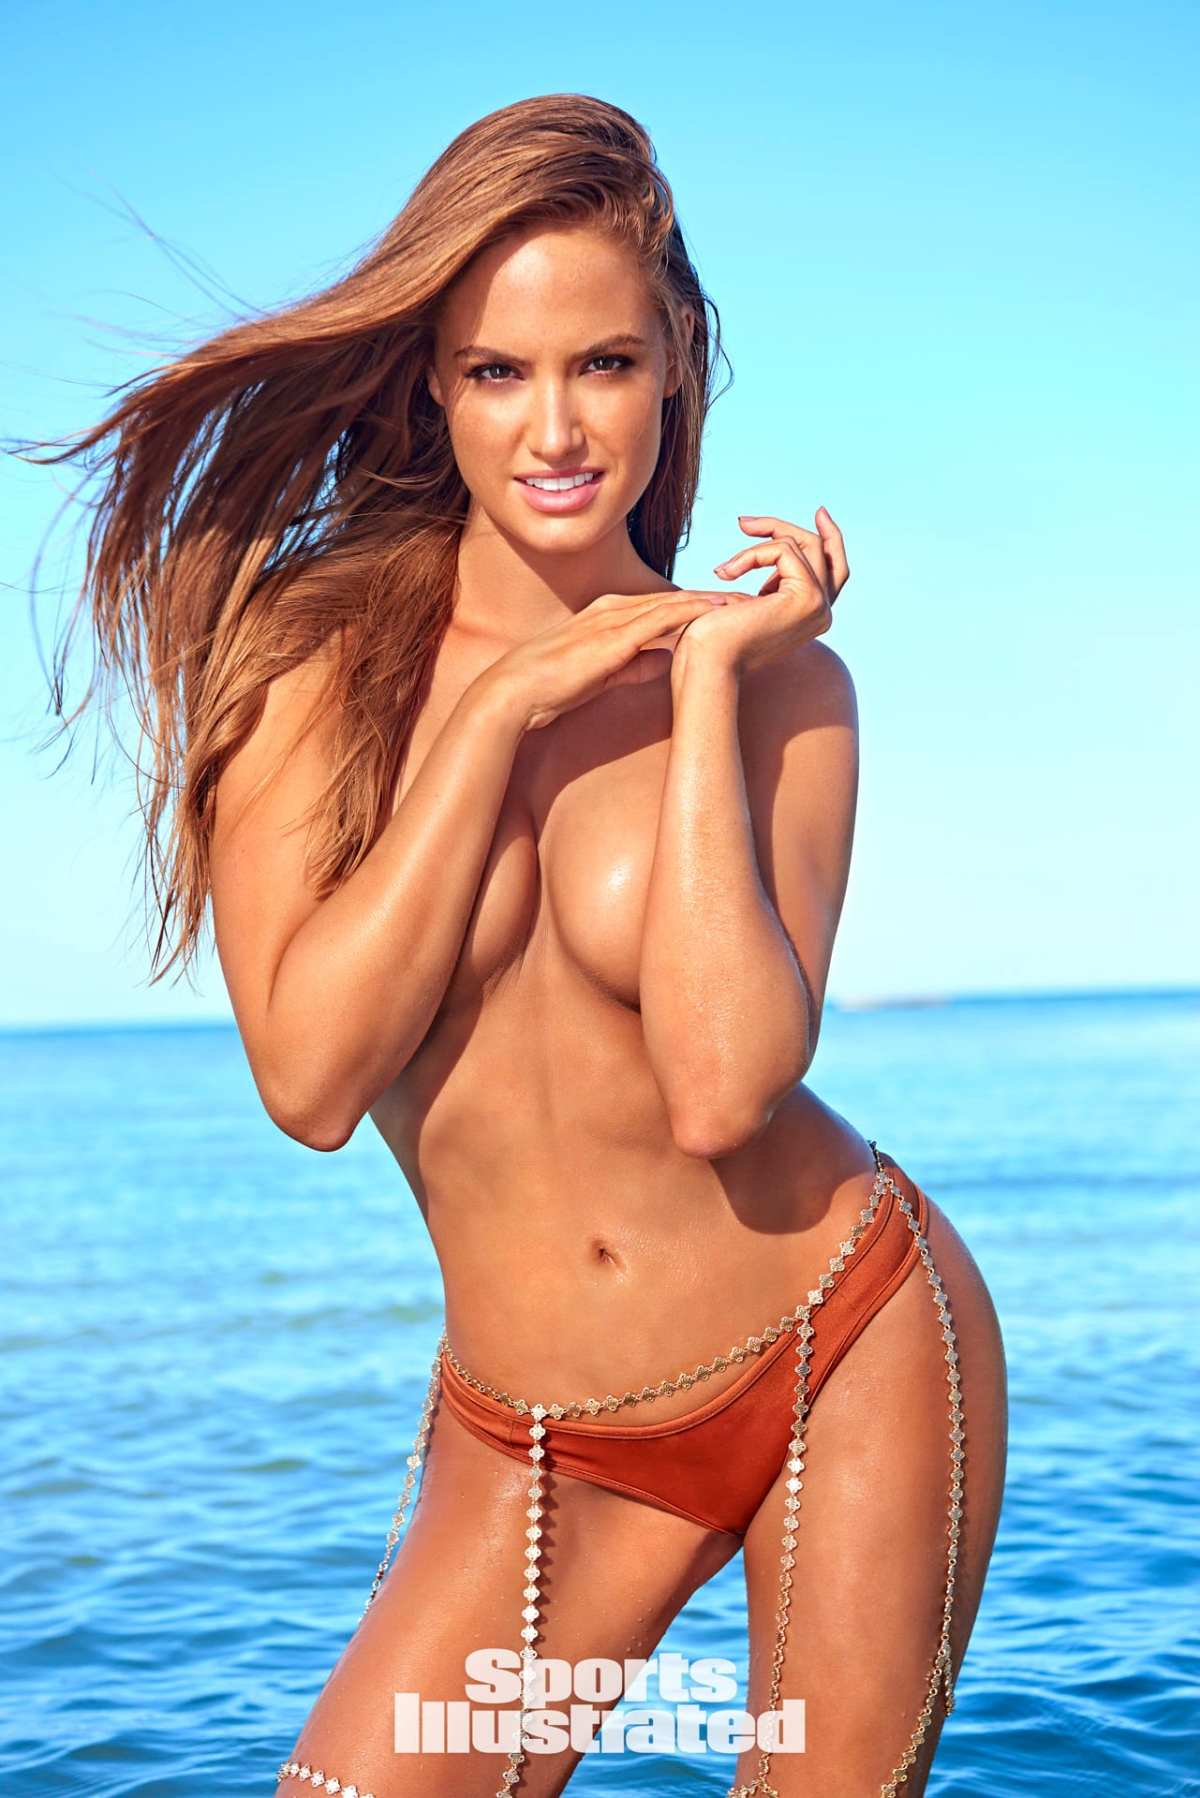 WHAT A BEAUTIFUL WOMAN WANTS: HALEY KALIL